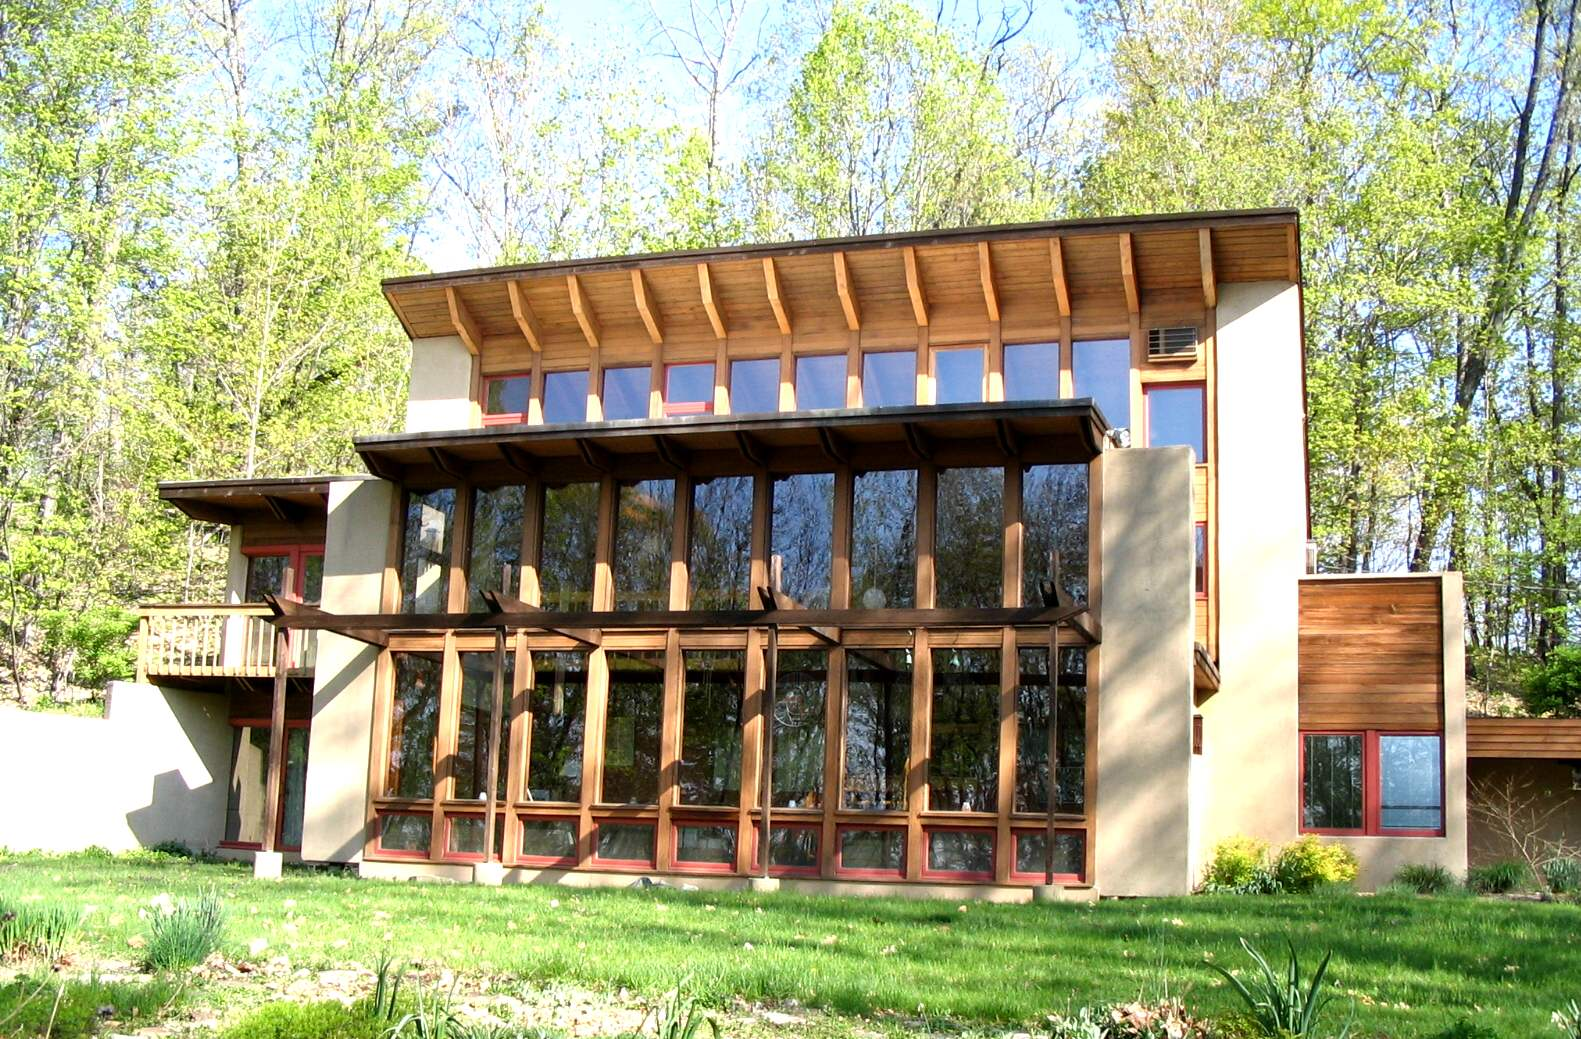 Passive solar home energysage for Passive solar home designs